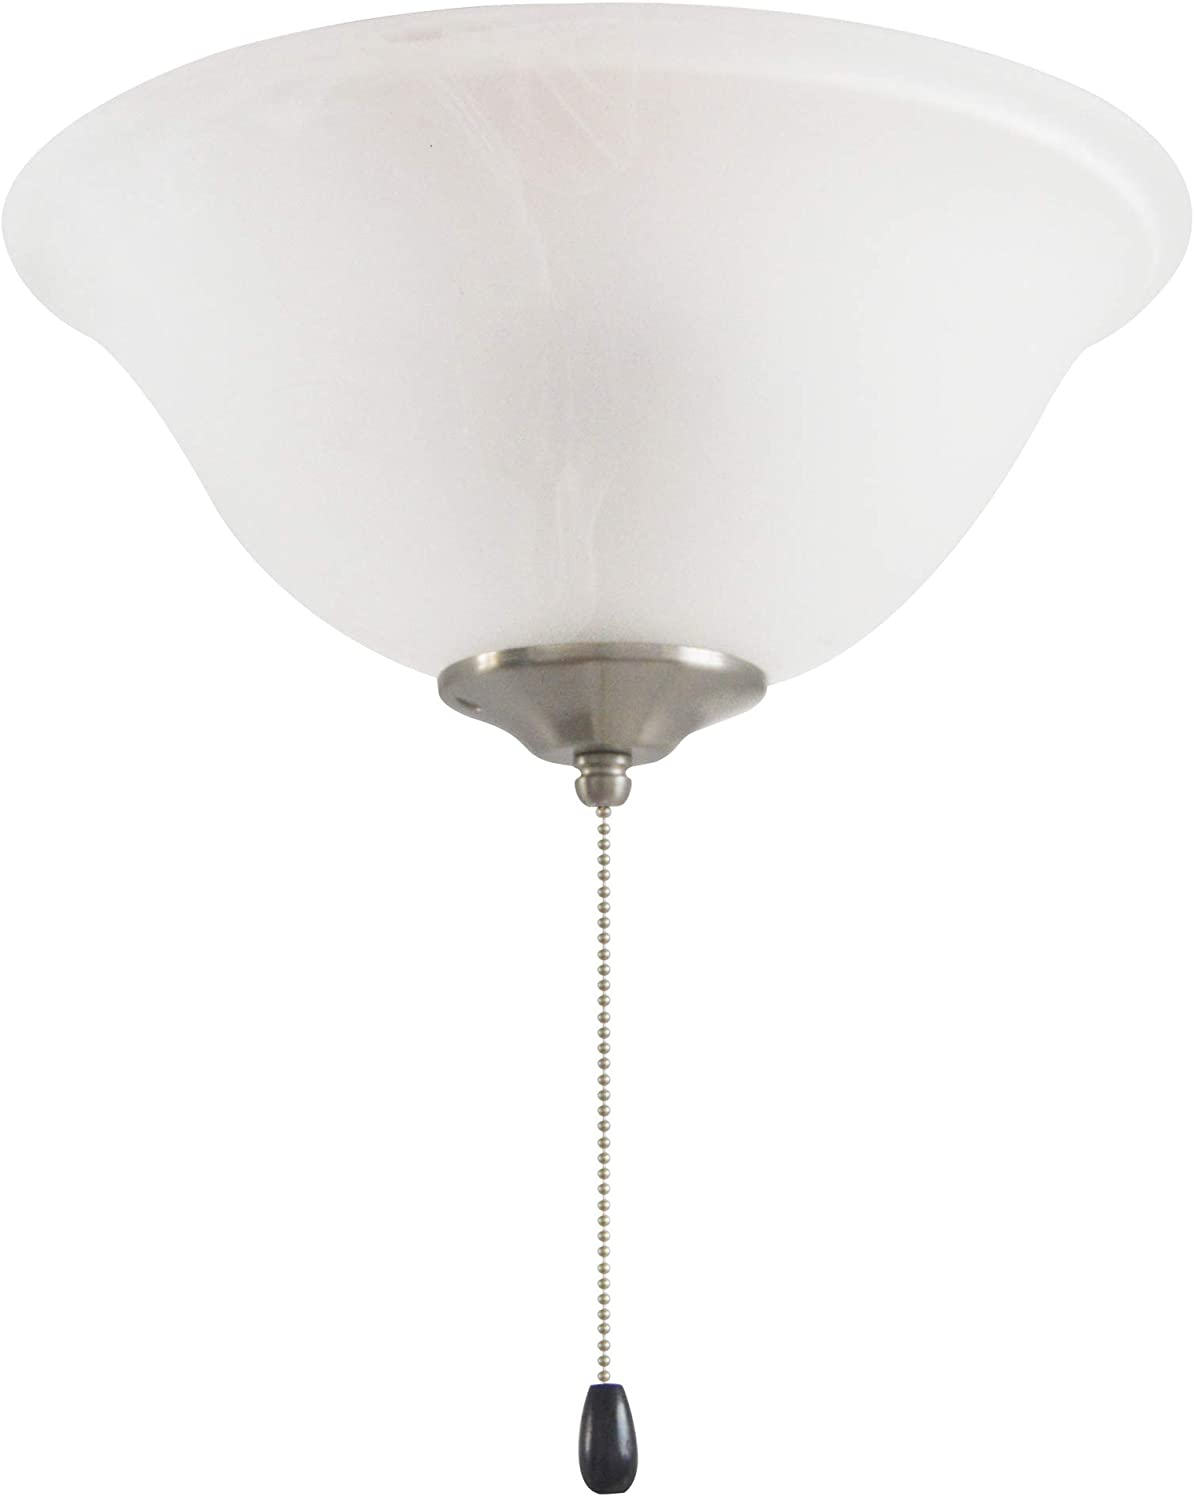 Design House 156505 Ceiling Fan LED Kit 3-Light Bowl with Pull Chain, Satin Nickel